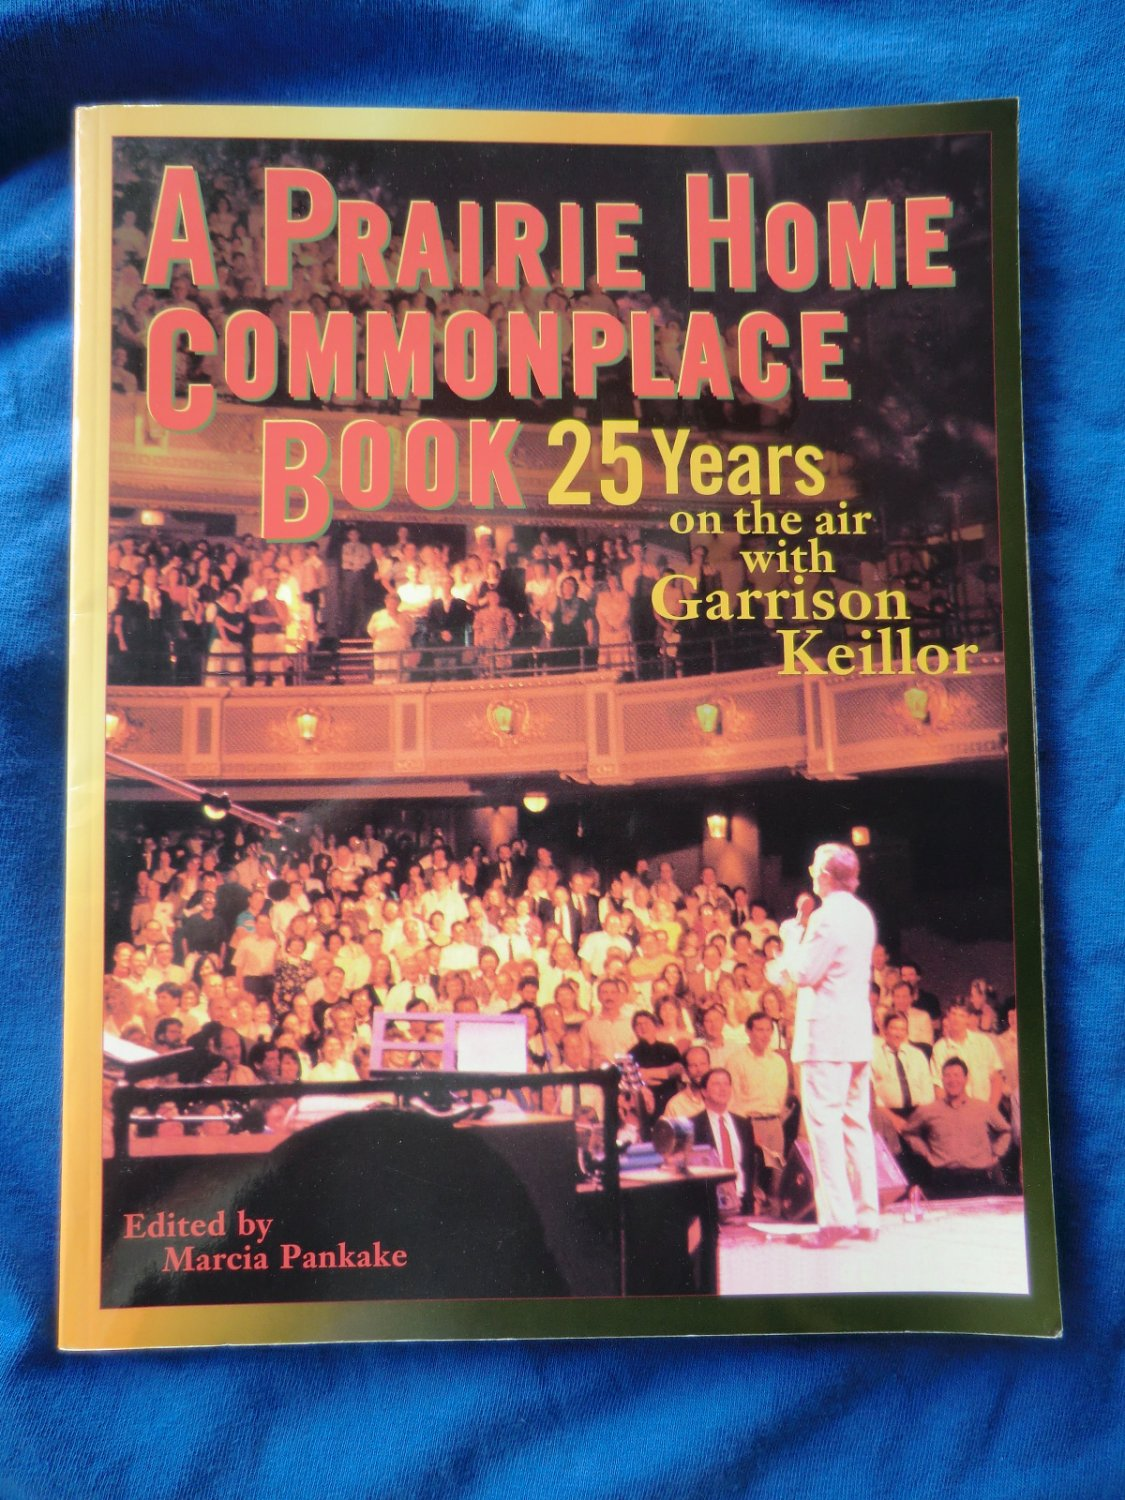 A Prairie Home Commonplace Book: 25 Years on the Air with Garrison Keillor